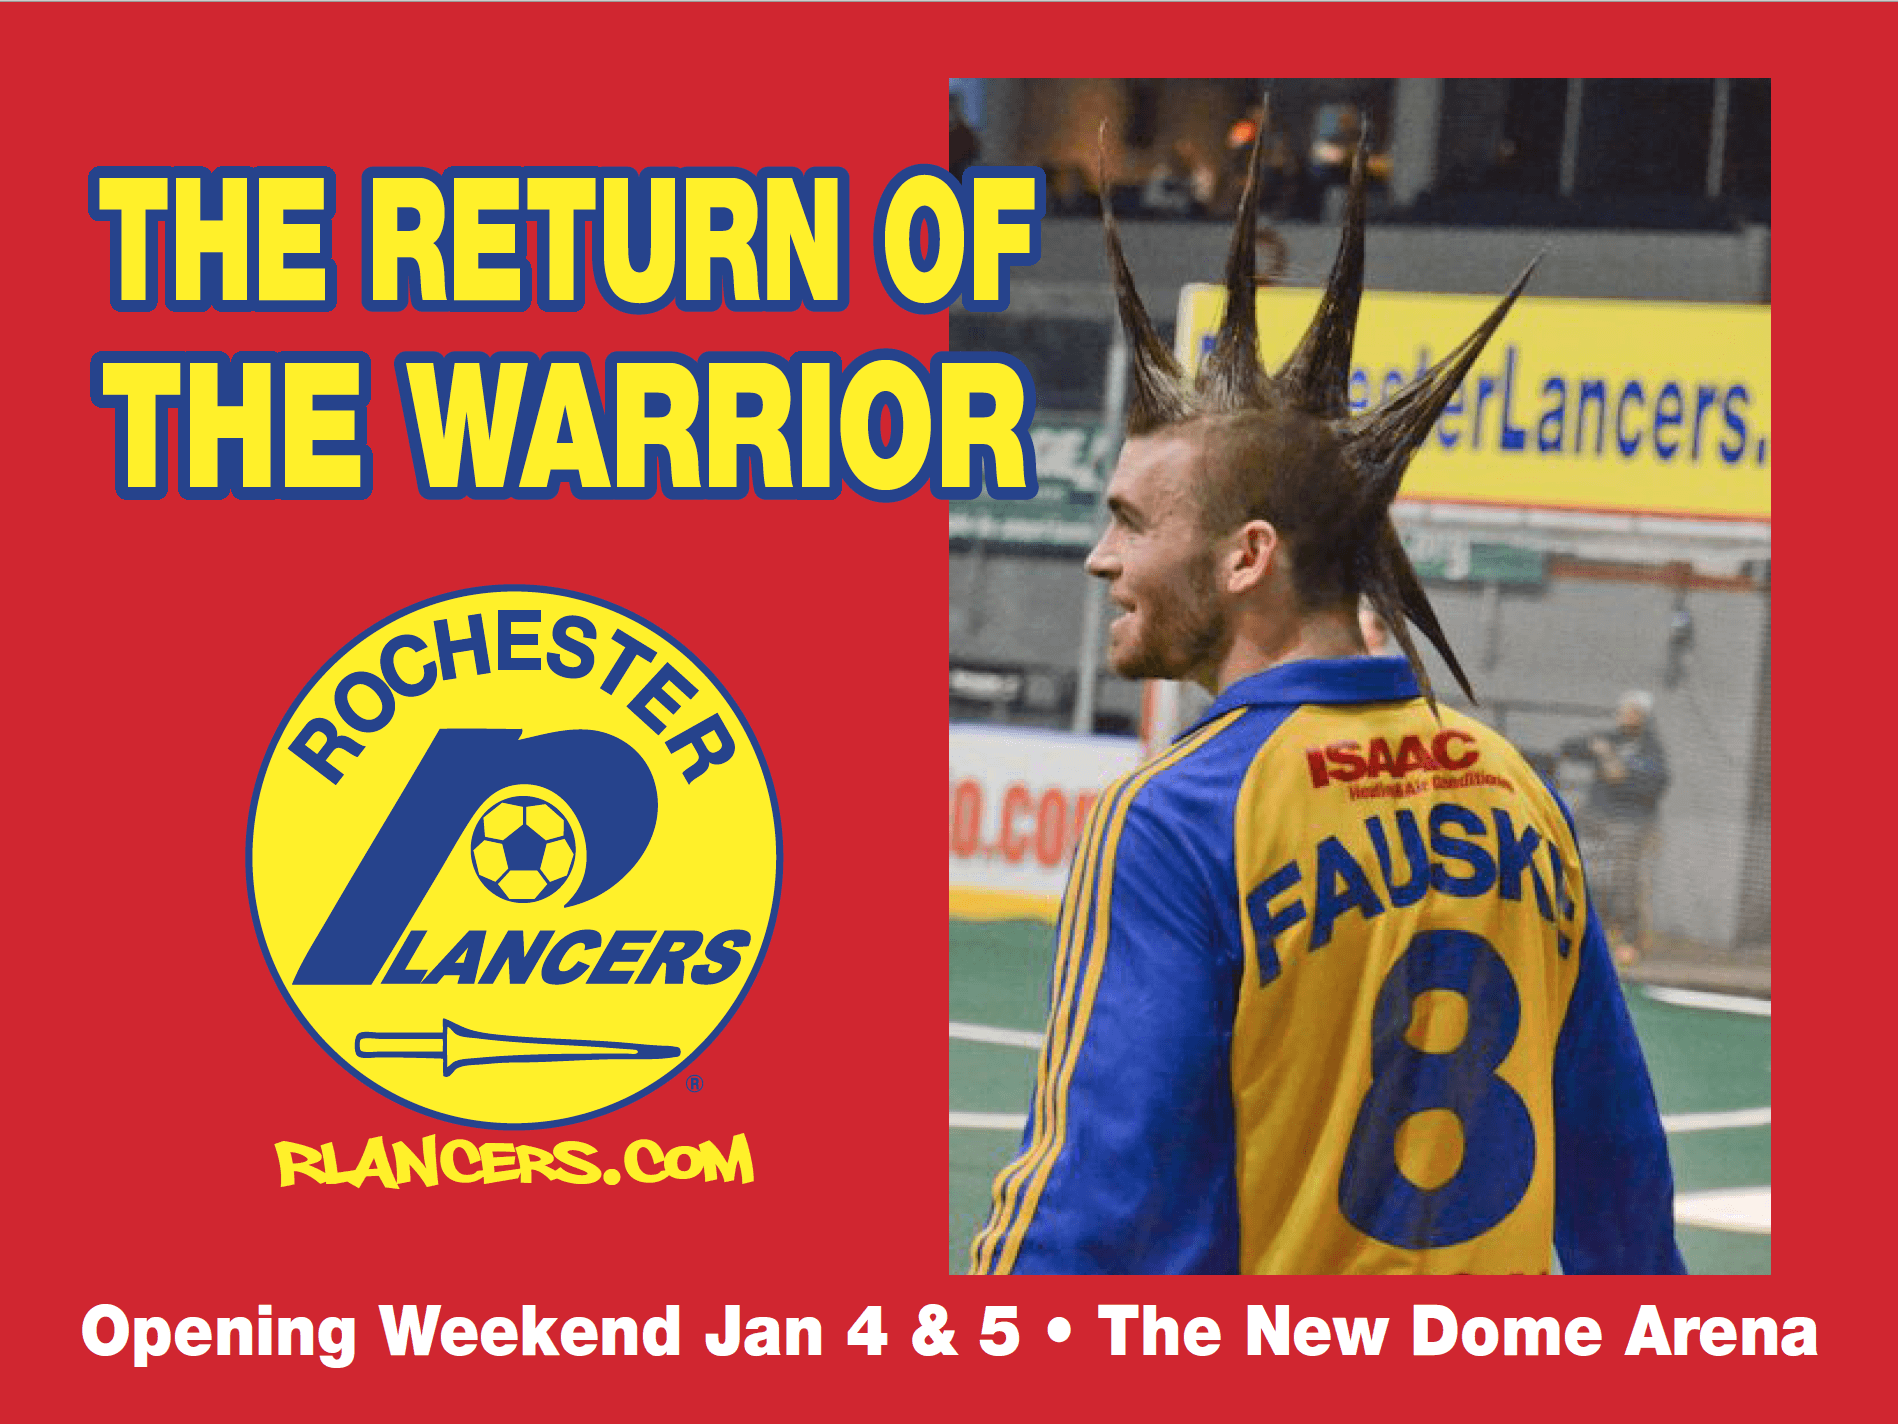 The Warrior Returns Opening Weekend!